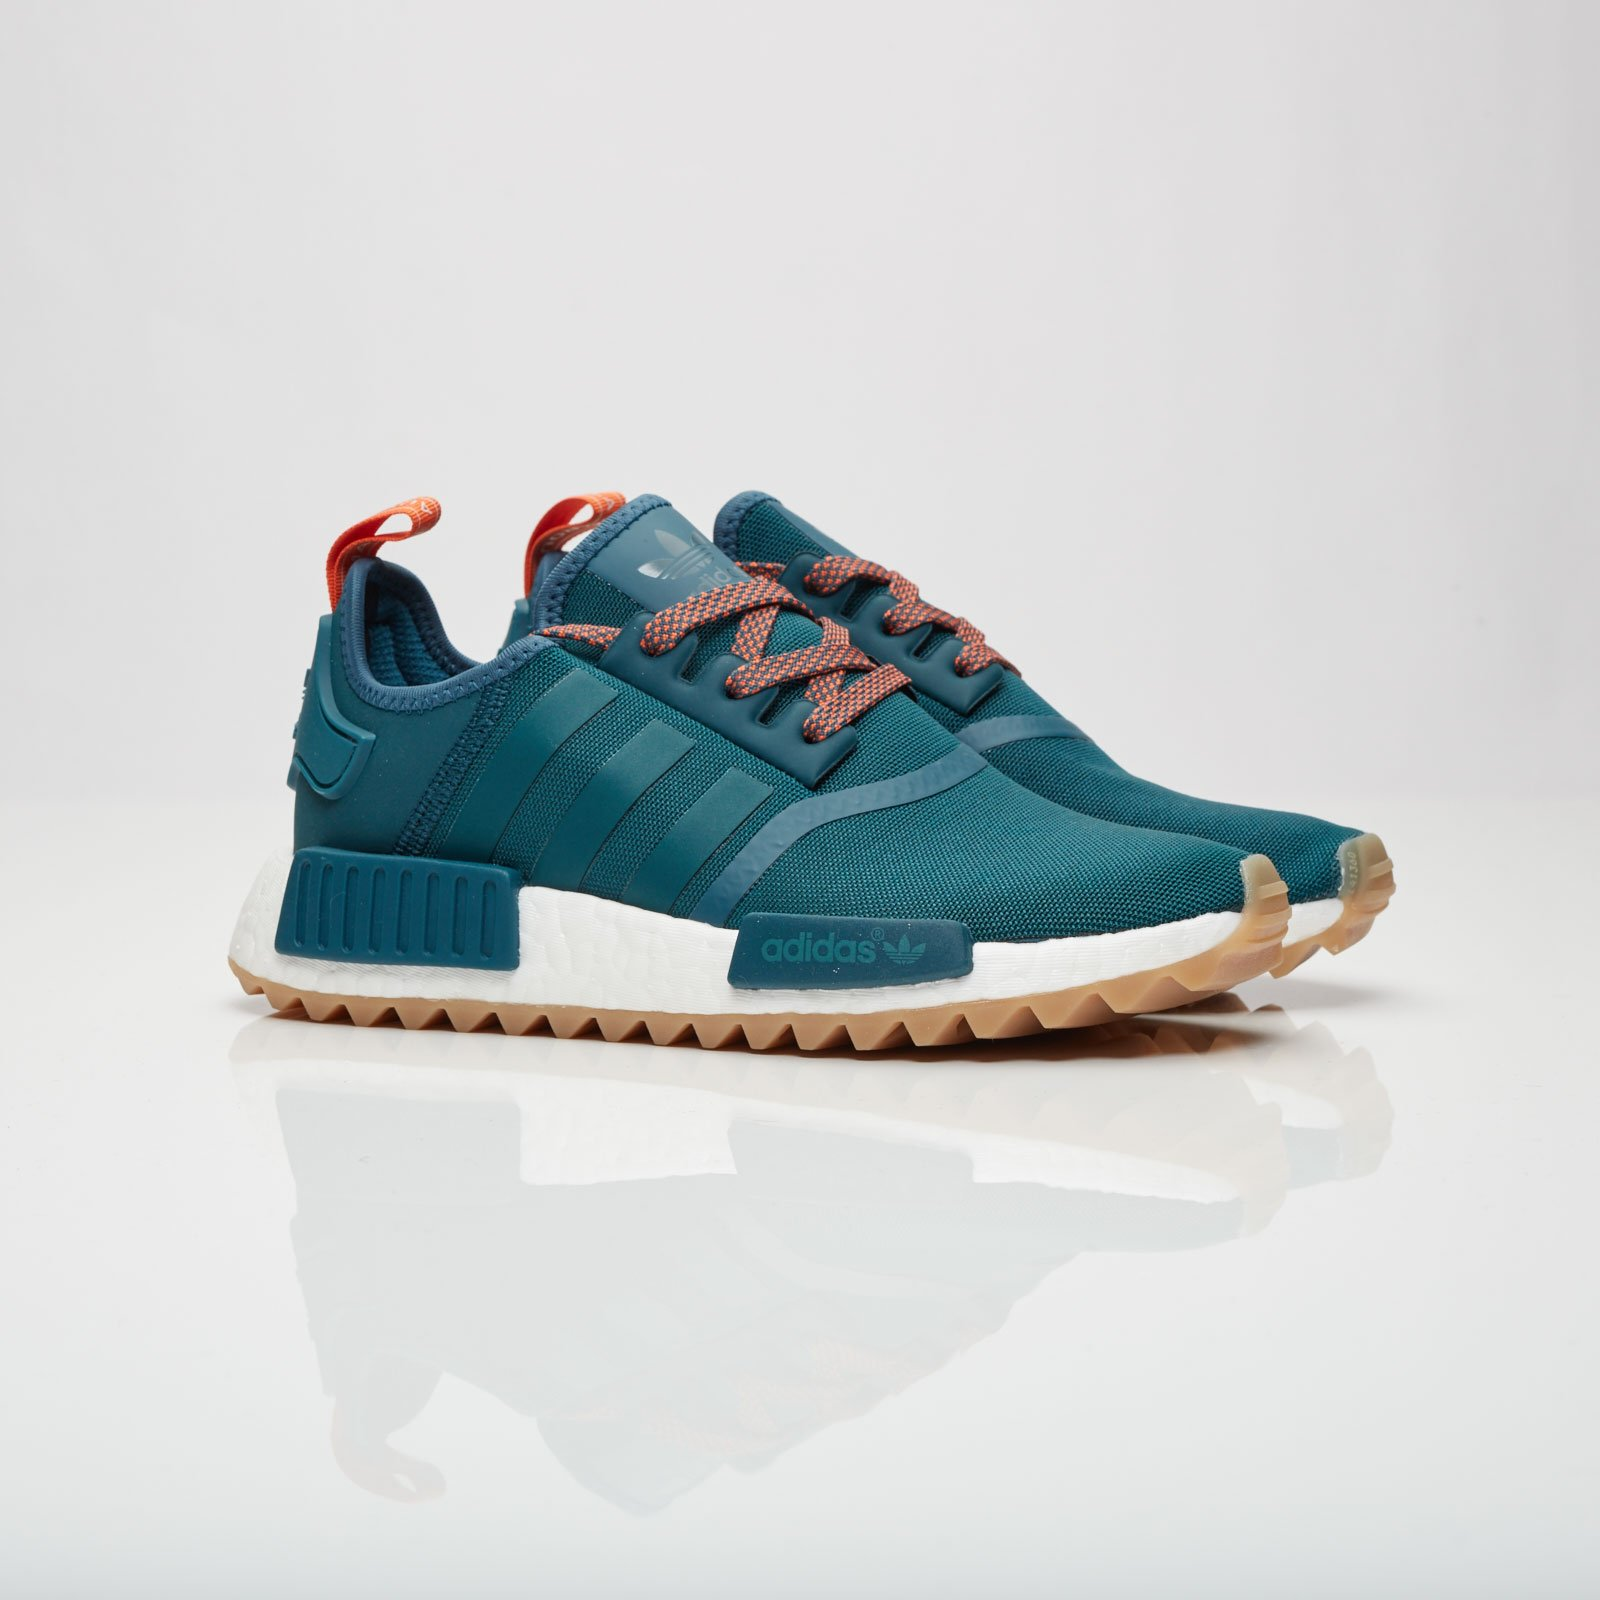 ad2d8885d wholesale orange green womens adidas nmd runner shoes a596f 0bc8c